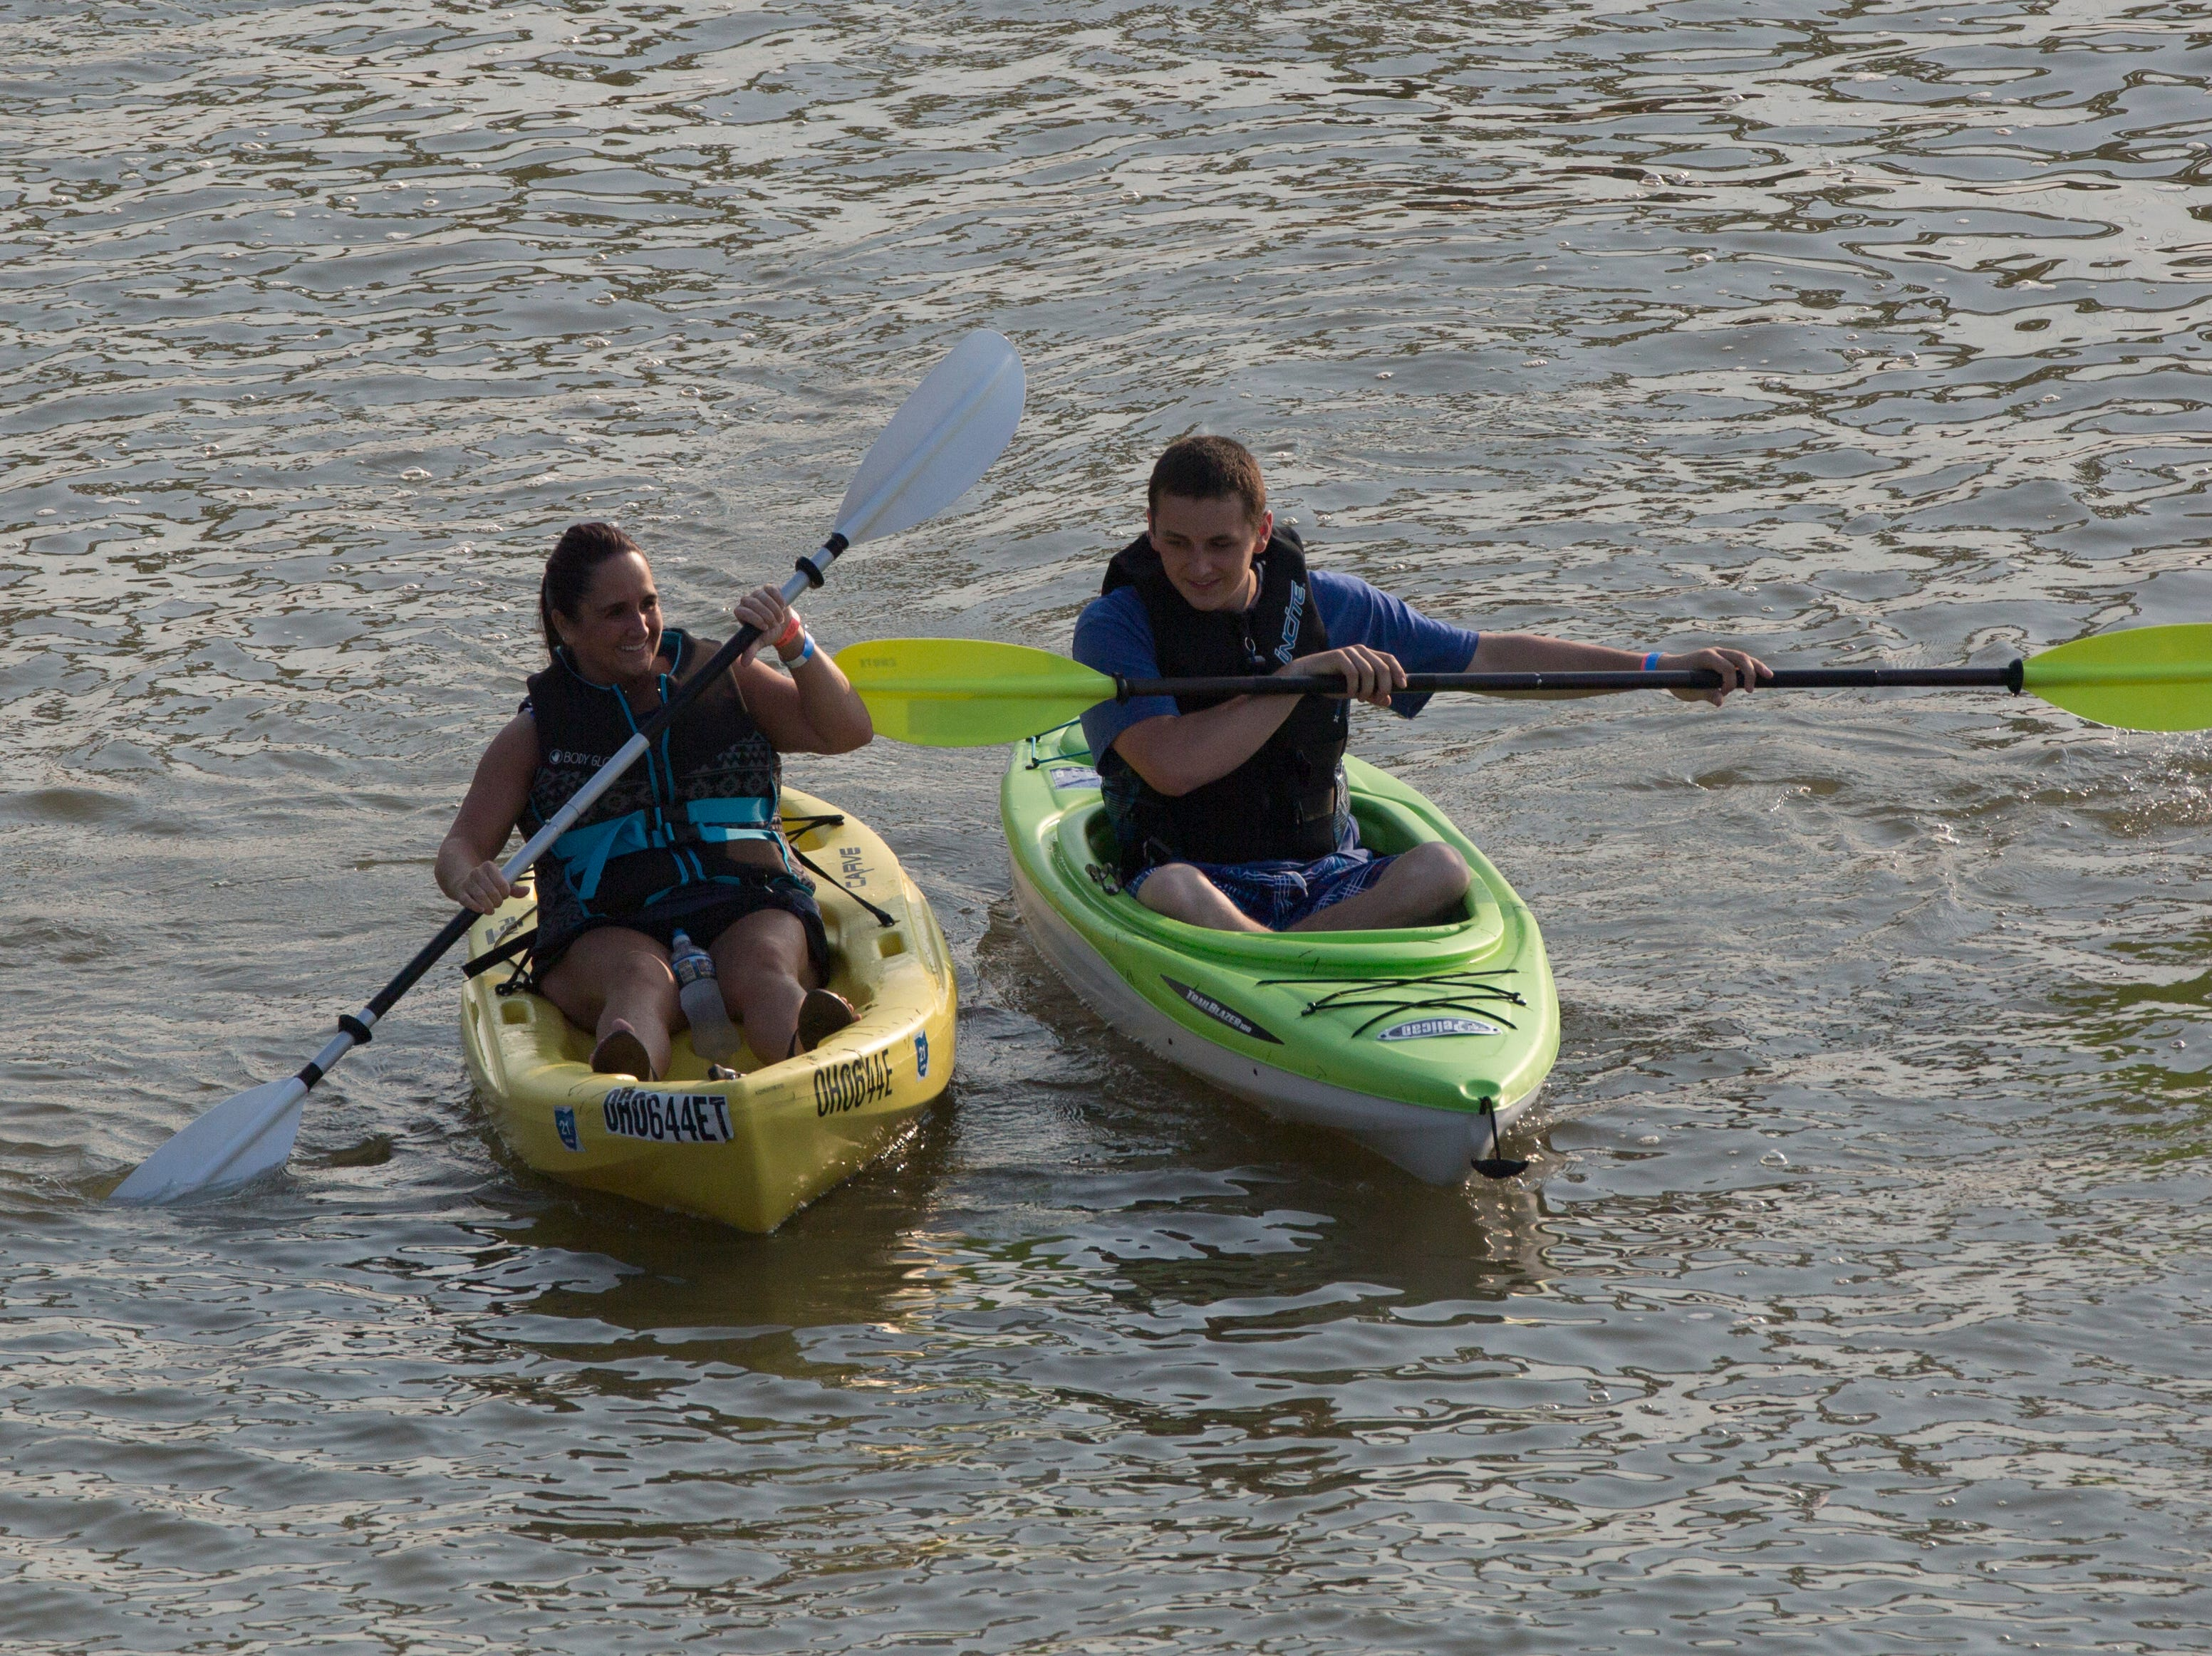 People kayaks down the Ohio River during the 17th annual Ohio River Paddlefest in Cincinnati on Saturday, Aug. 4, 2018.  According to organizers about 2000 people participated in the event which Outdoor Adventure Clubs of Greater Cincinnati raised almost $100,000.